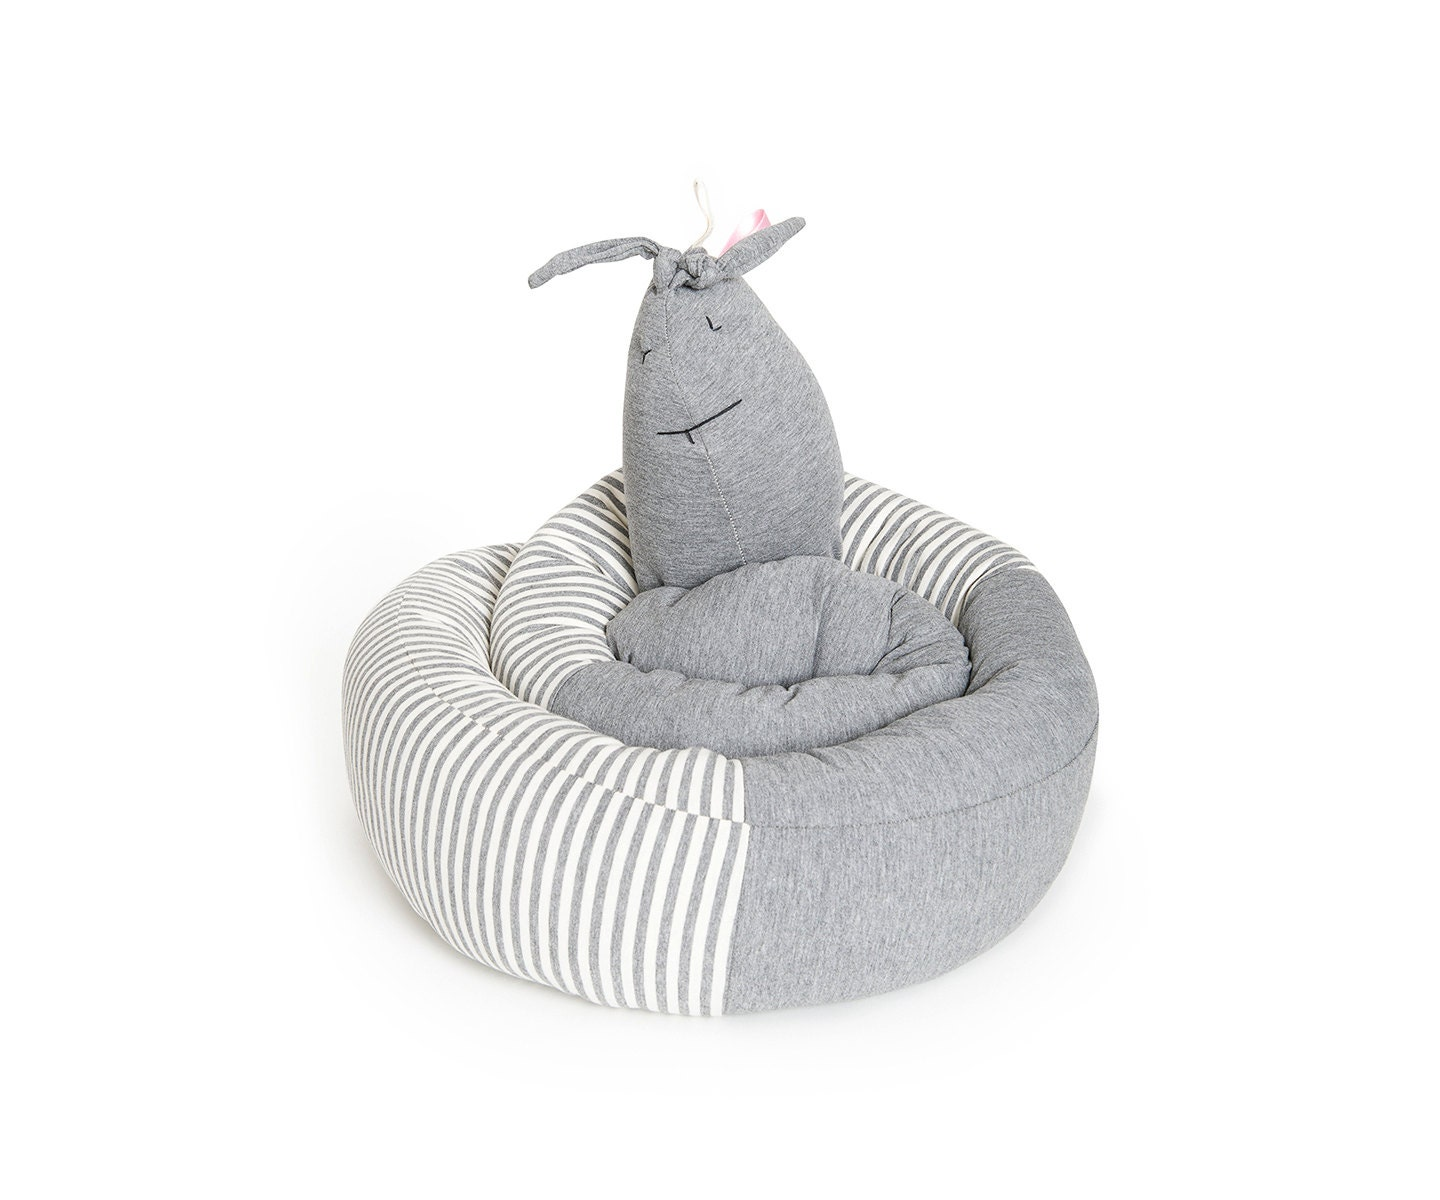 Crib pillows babies - Snaily Bailey Spiral Pillow For Baby Crib Grey Crib Bumper For Bassinet And Baby Crib